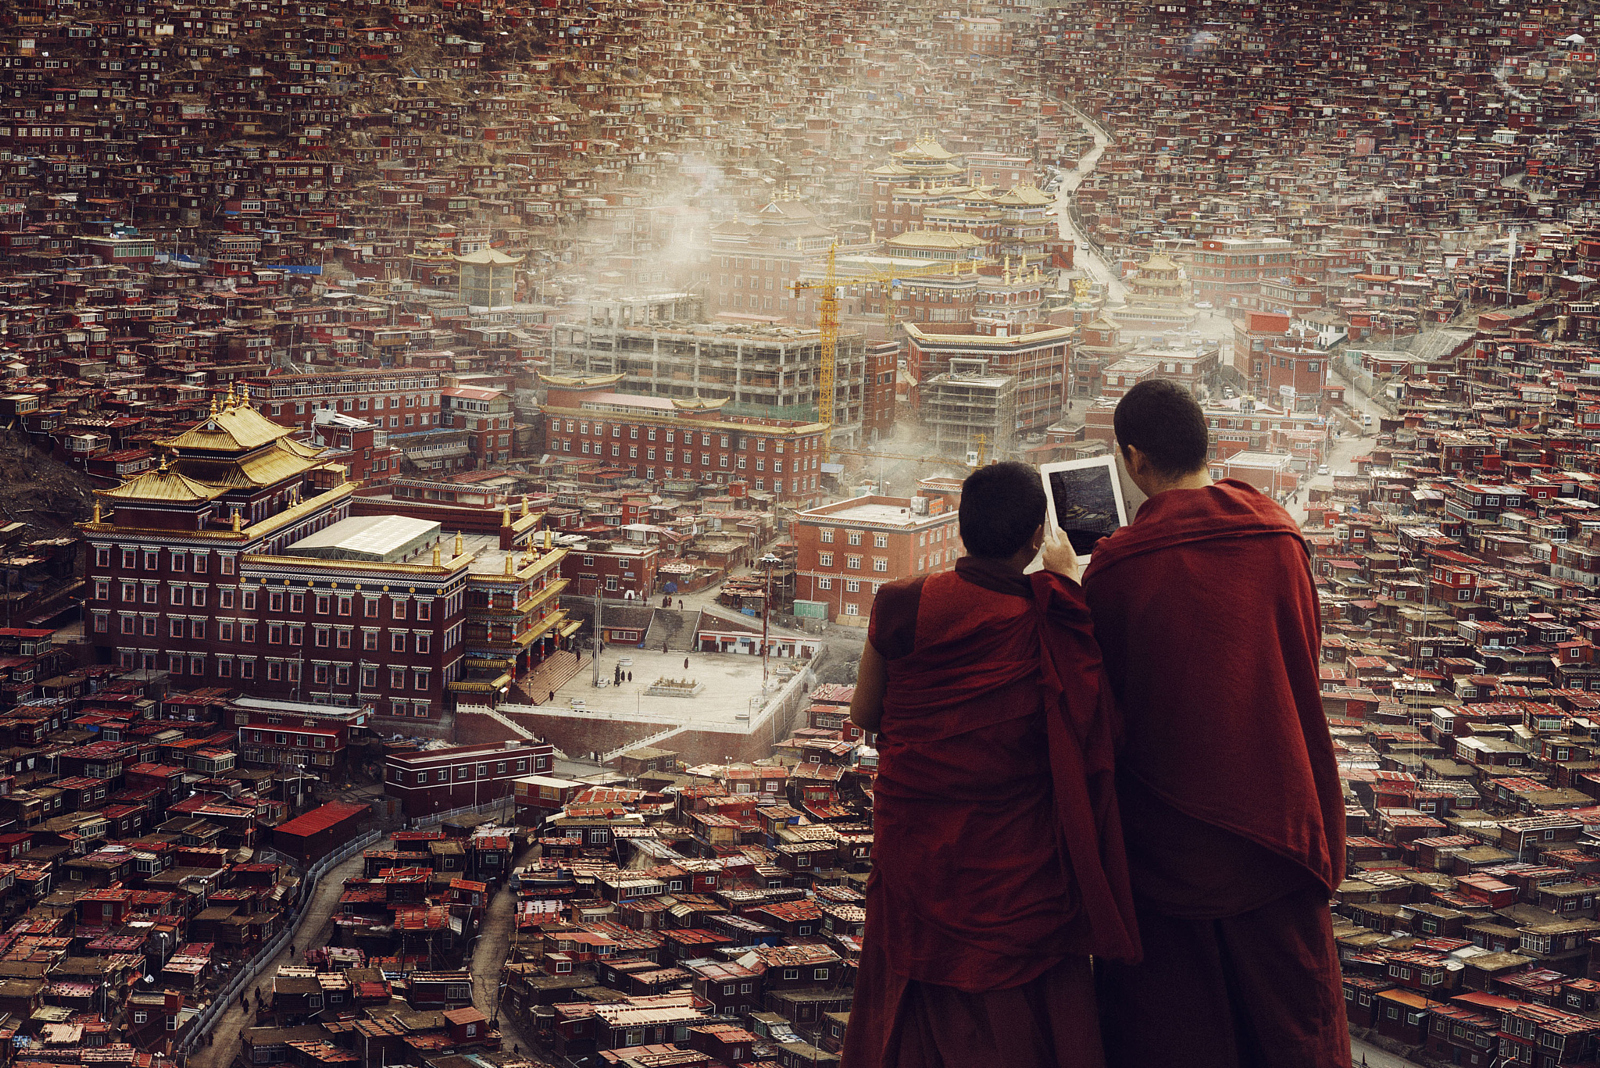 40 Epic Photos that Capture the Power of Technology Today